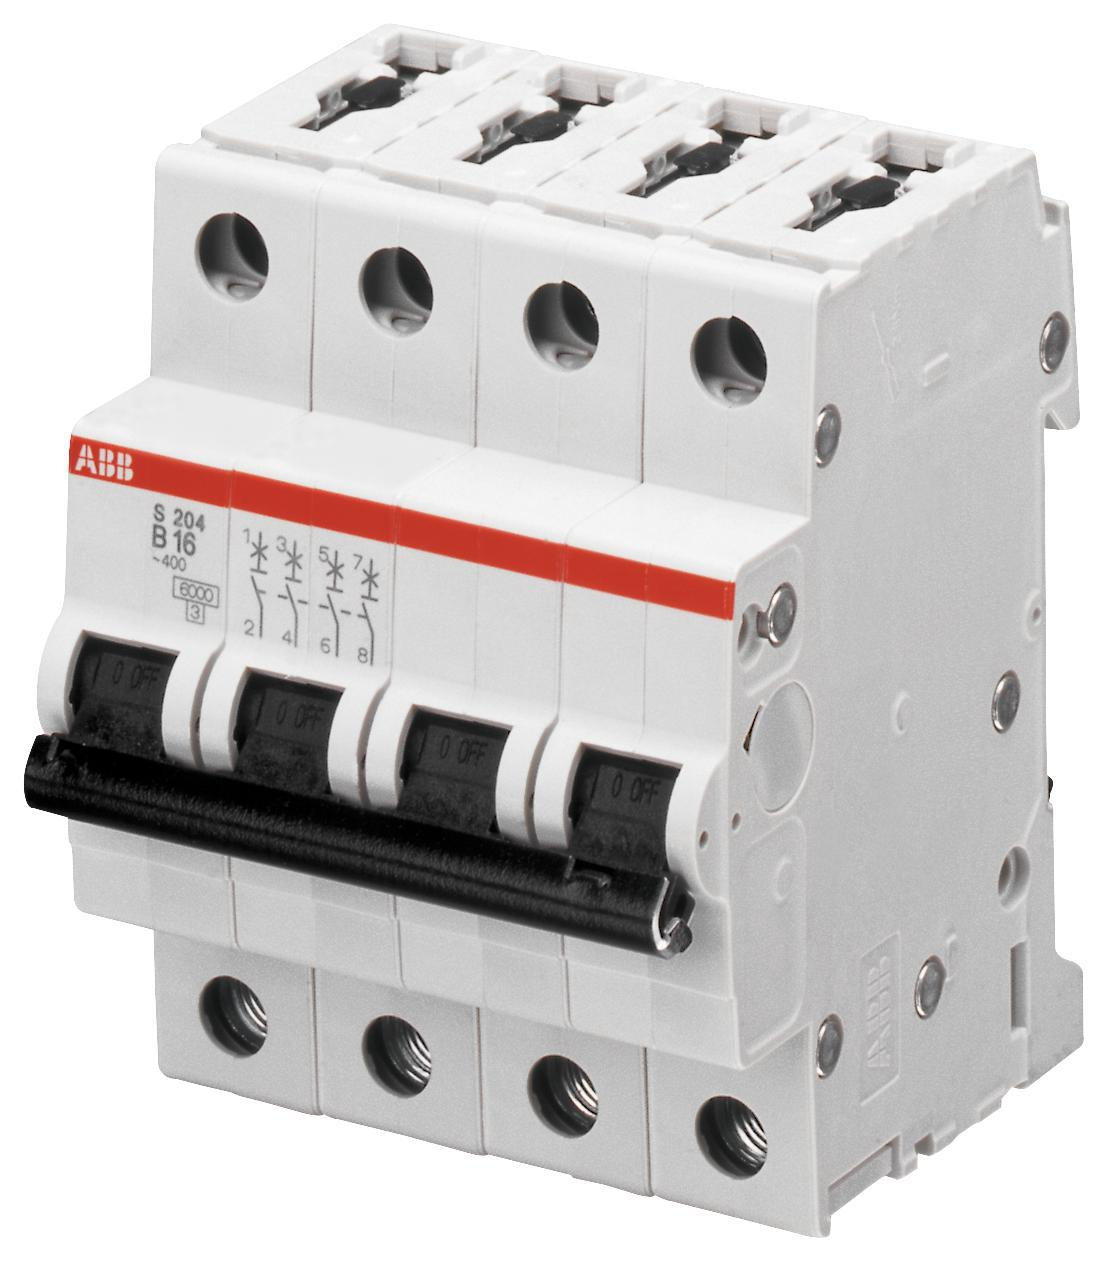 Abb S204 C40 Circuit Breaker Thermal Mag 4 Pole 40a